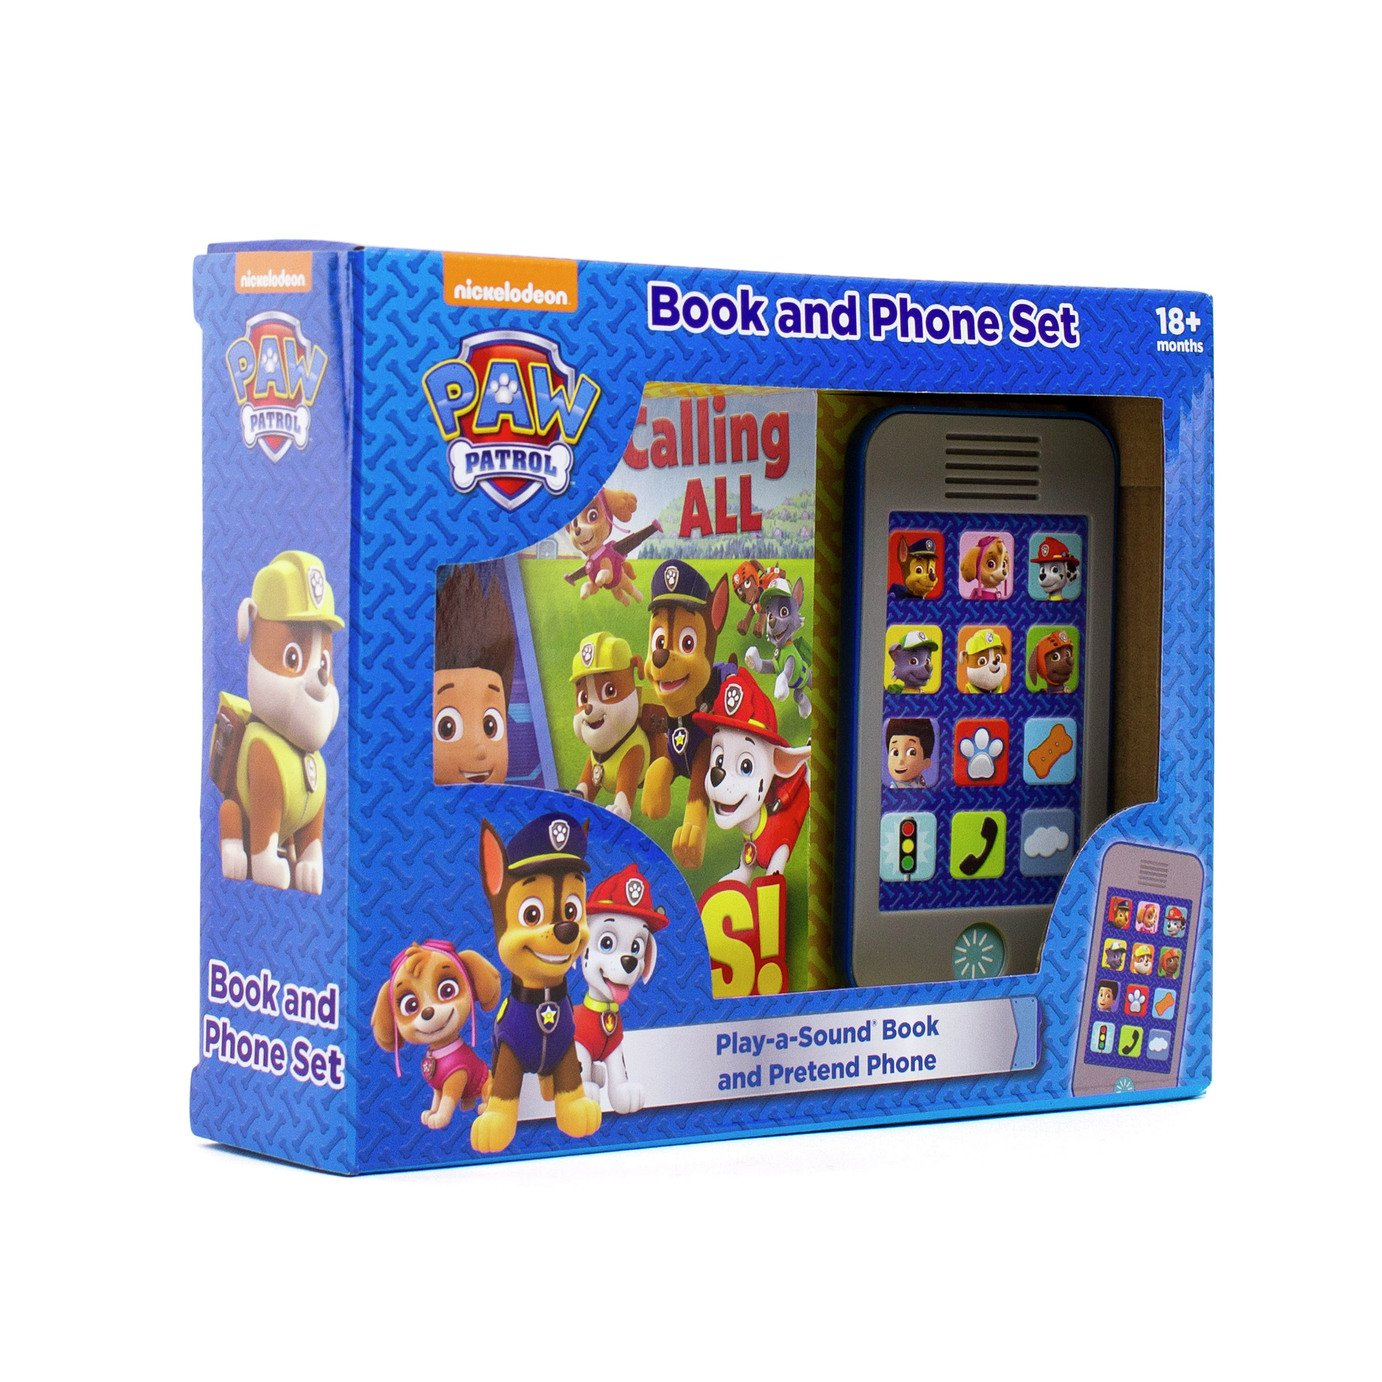 PAW Patrol My own Phone